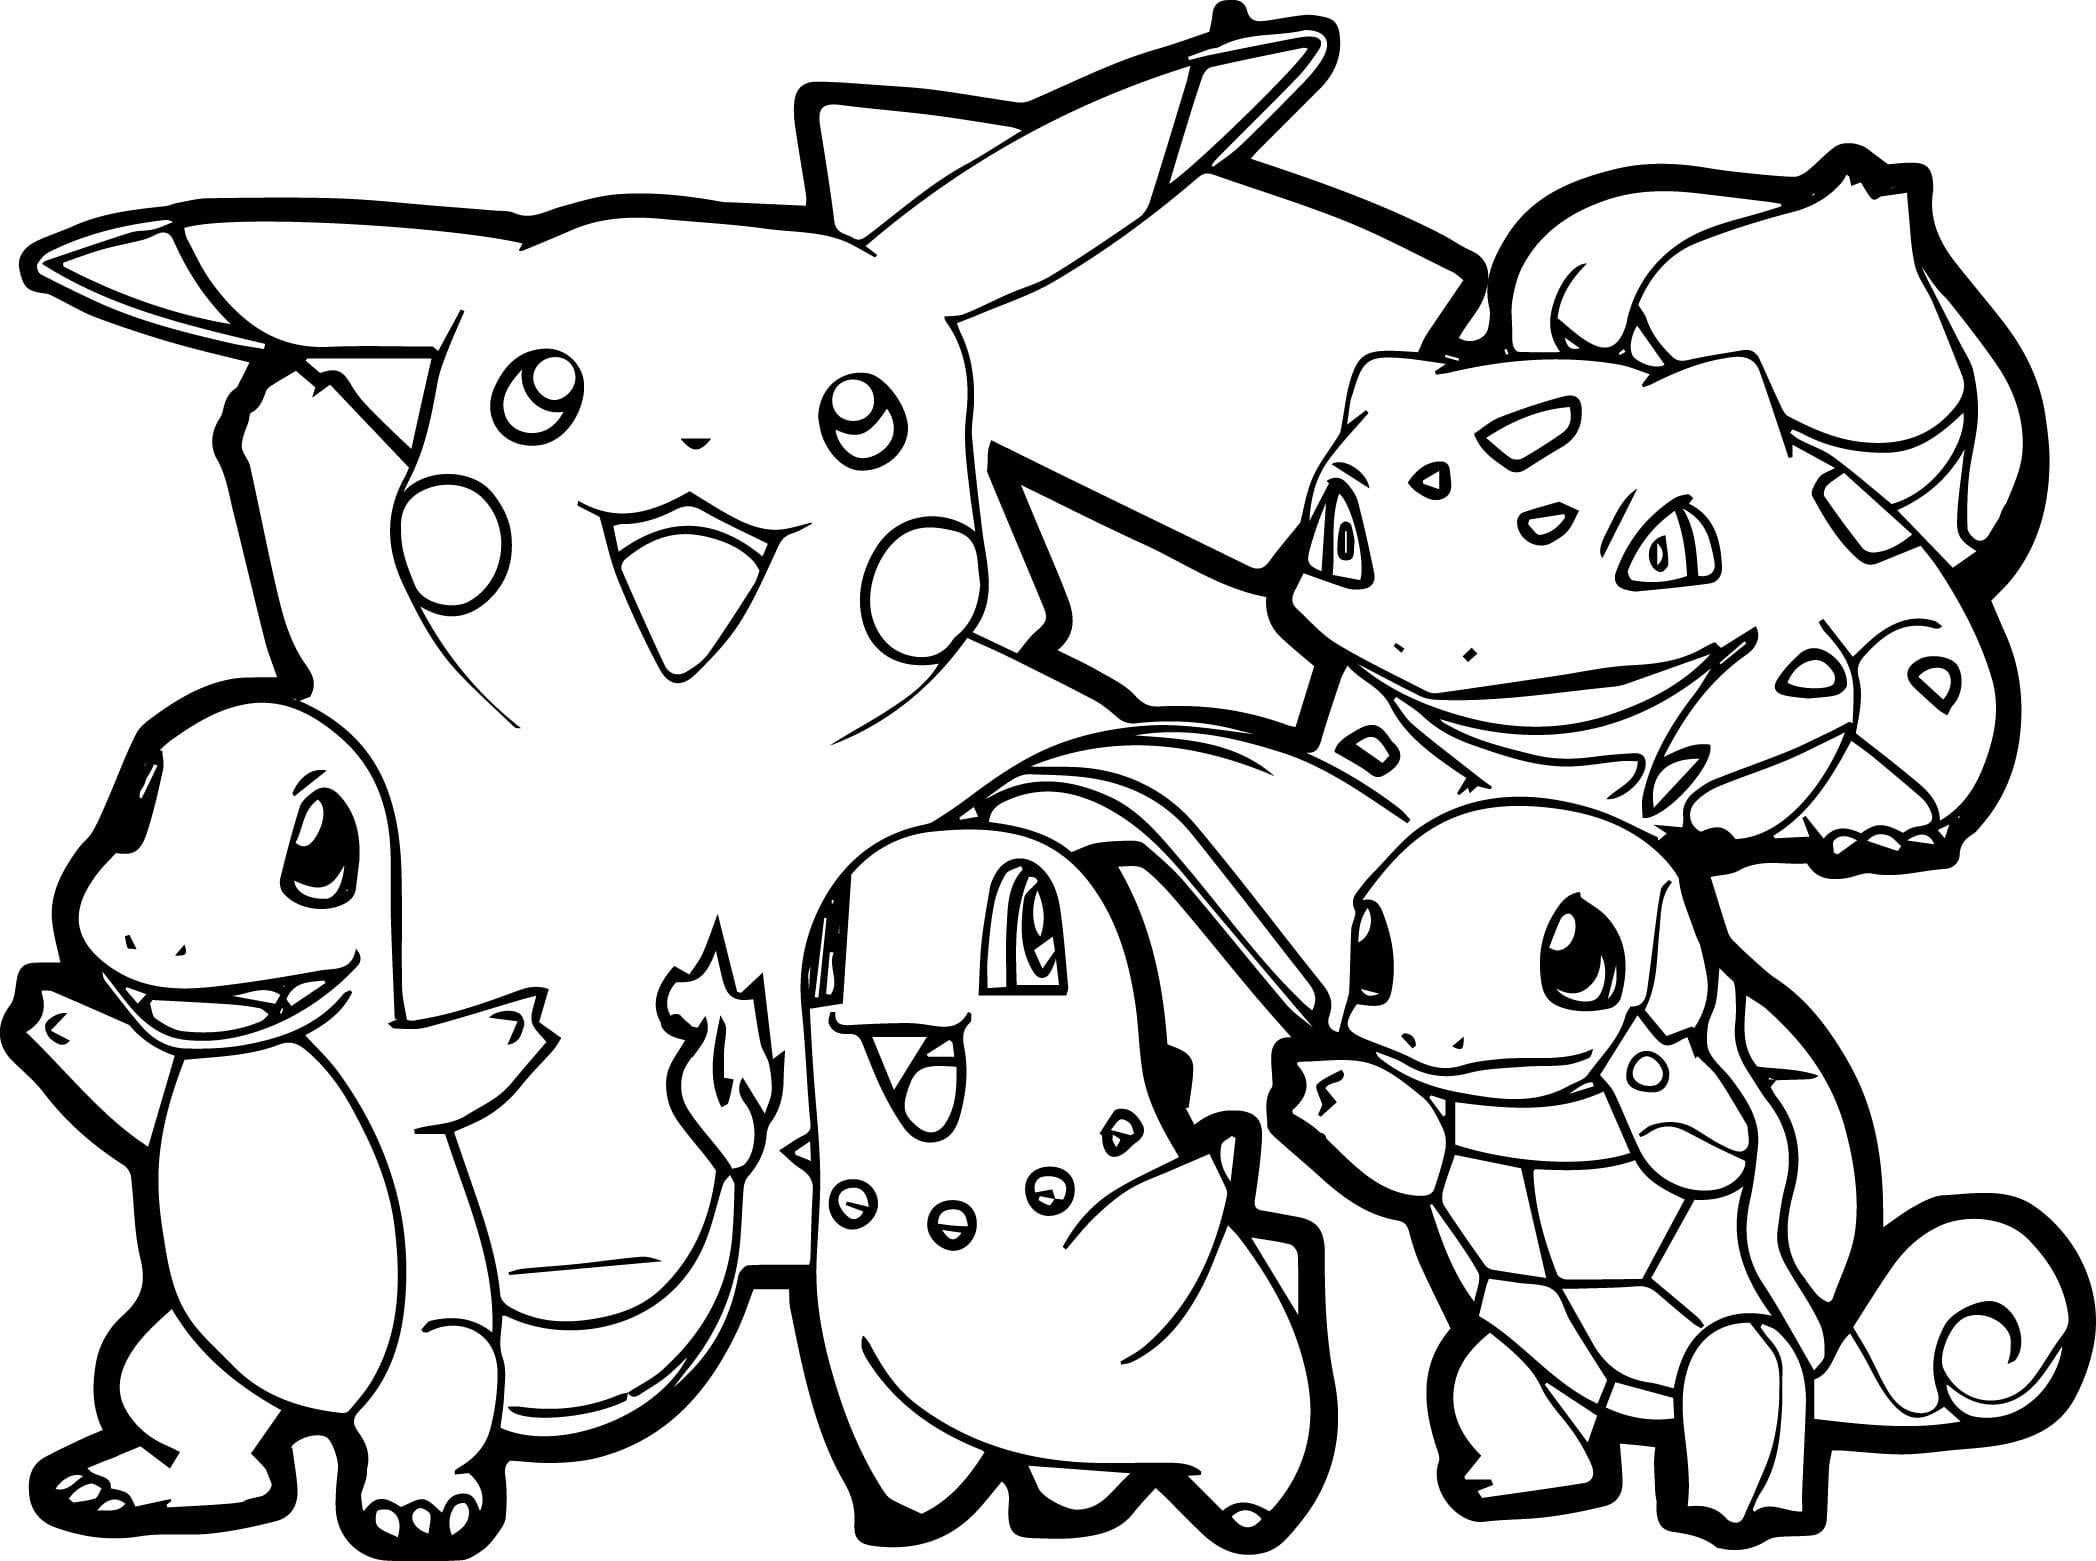 Wonderful Pokemon Coloring Pages That You Can Print Image Result